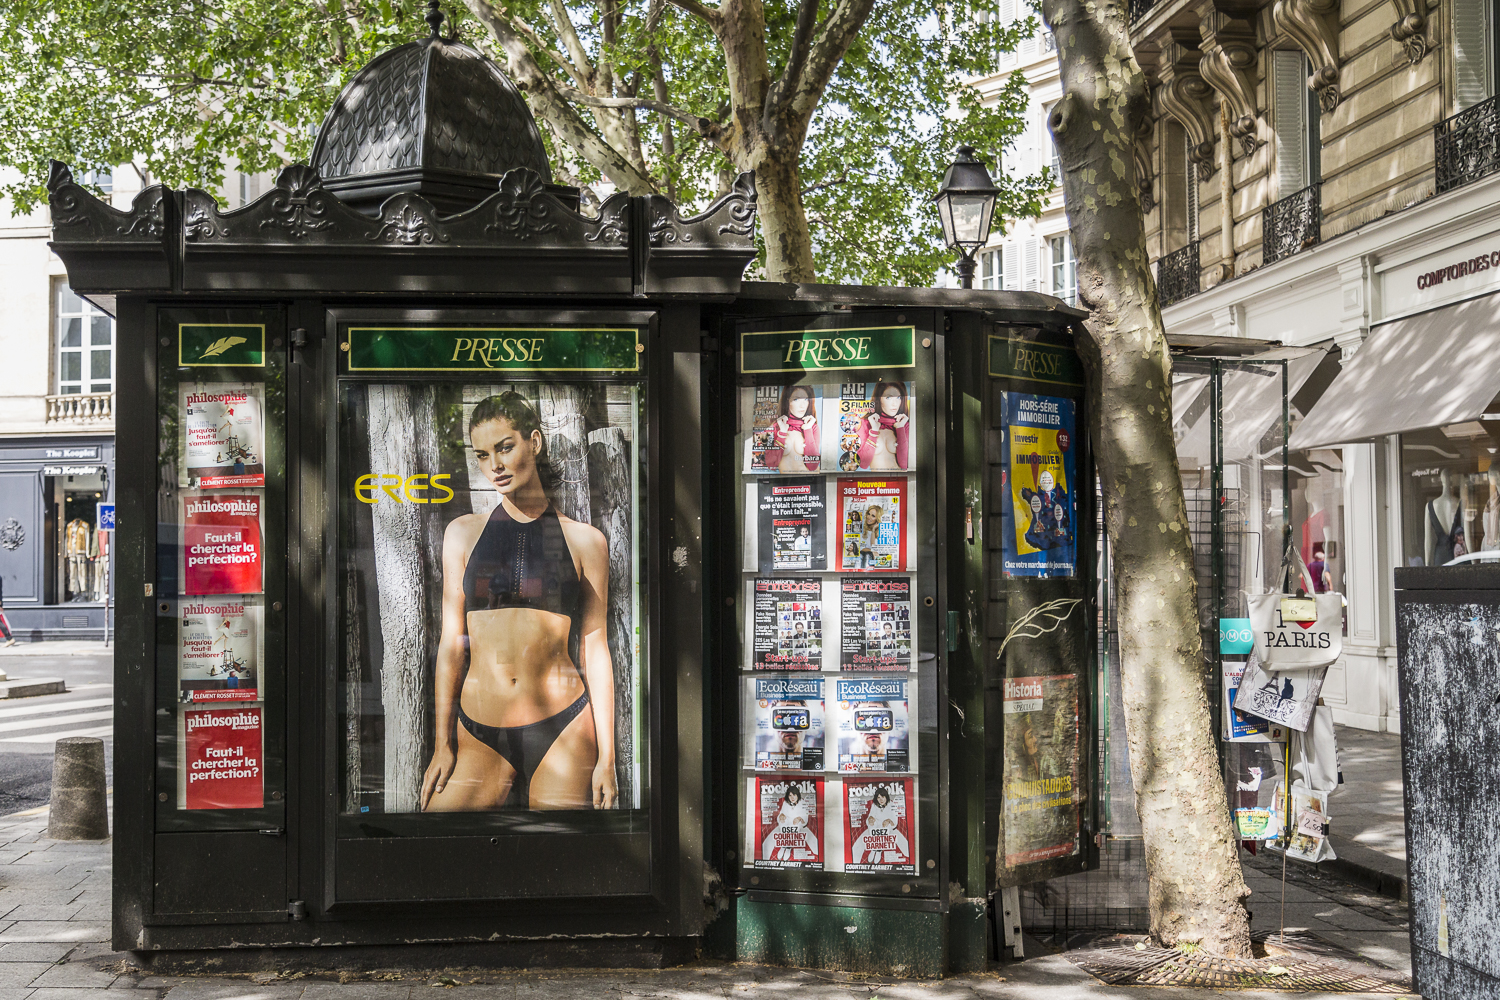 French advertising. Oh lala!